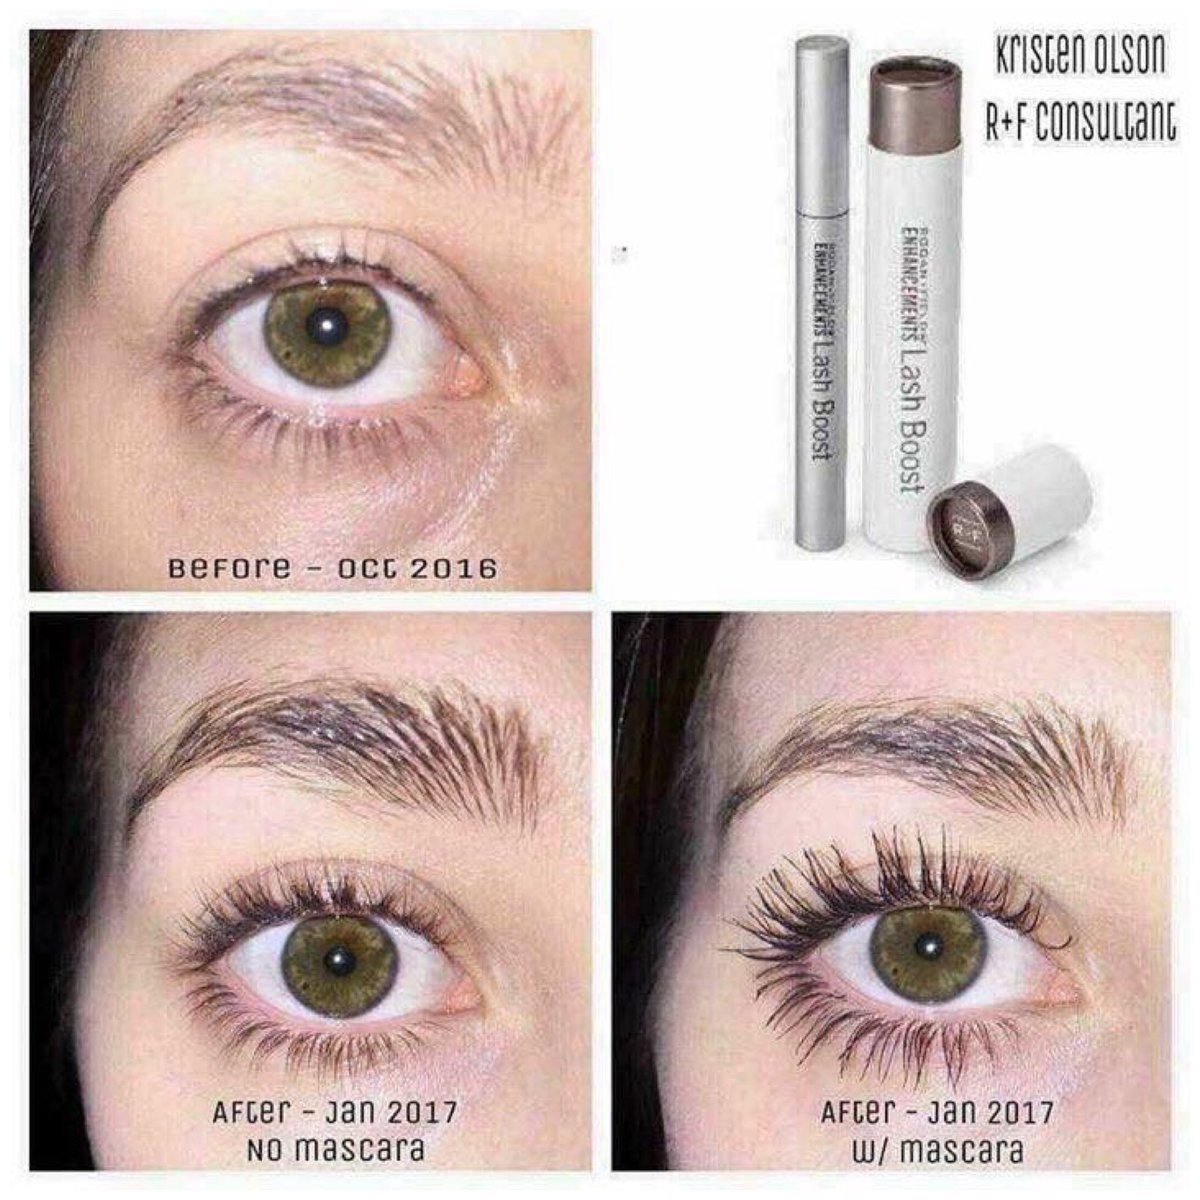 Joanie Barr On Twitter Grow Your Own Lashes Naturally With Lash